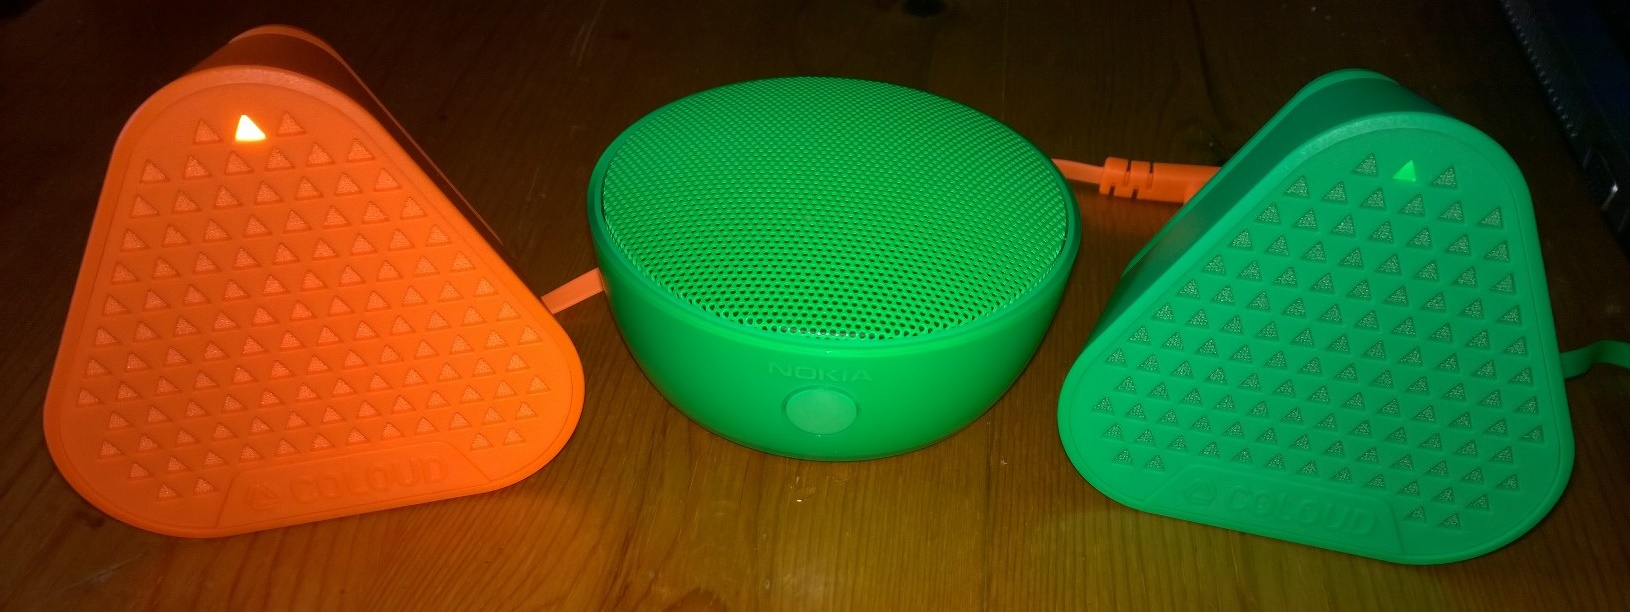 nokia_speakers